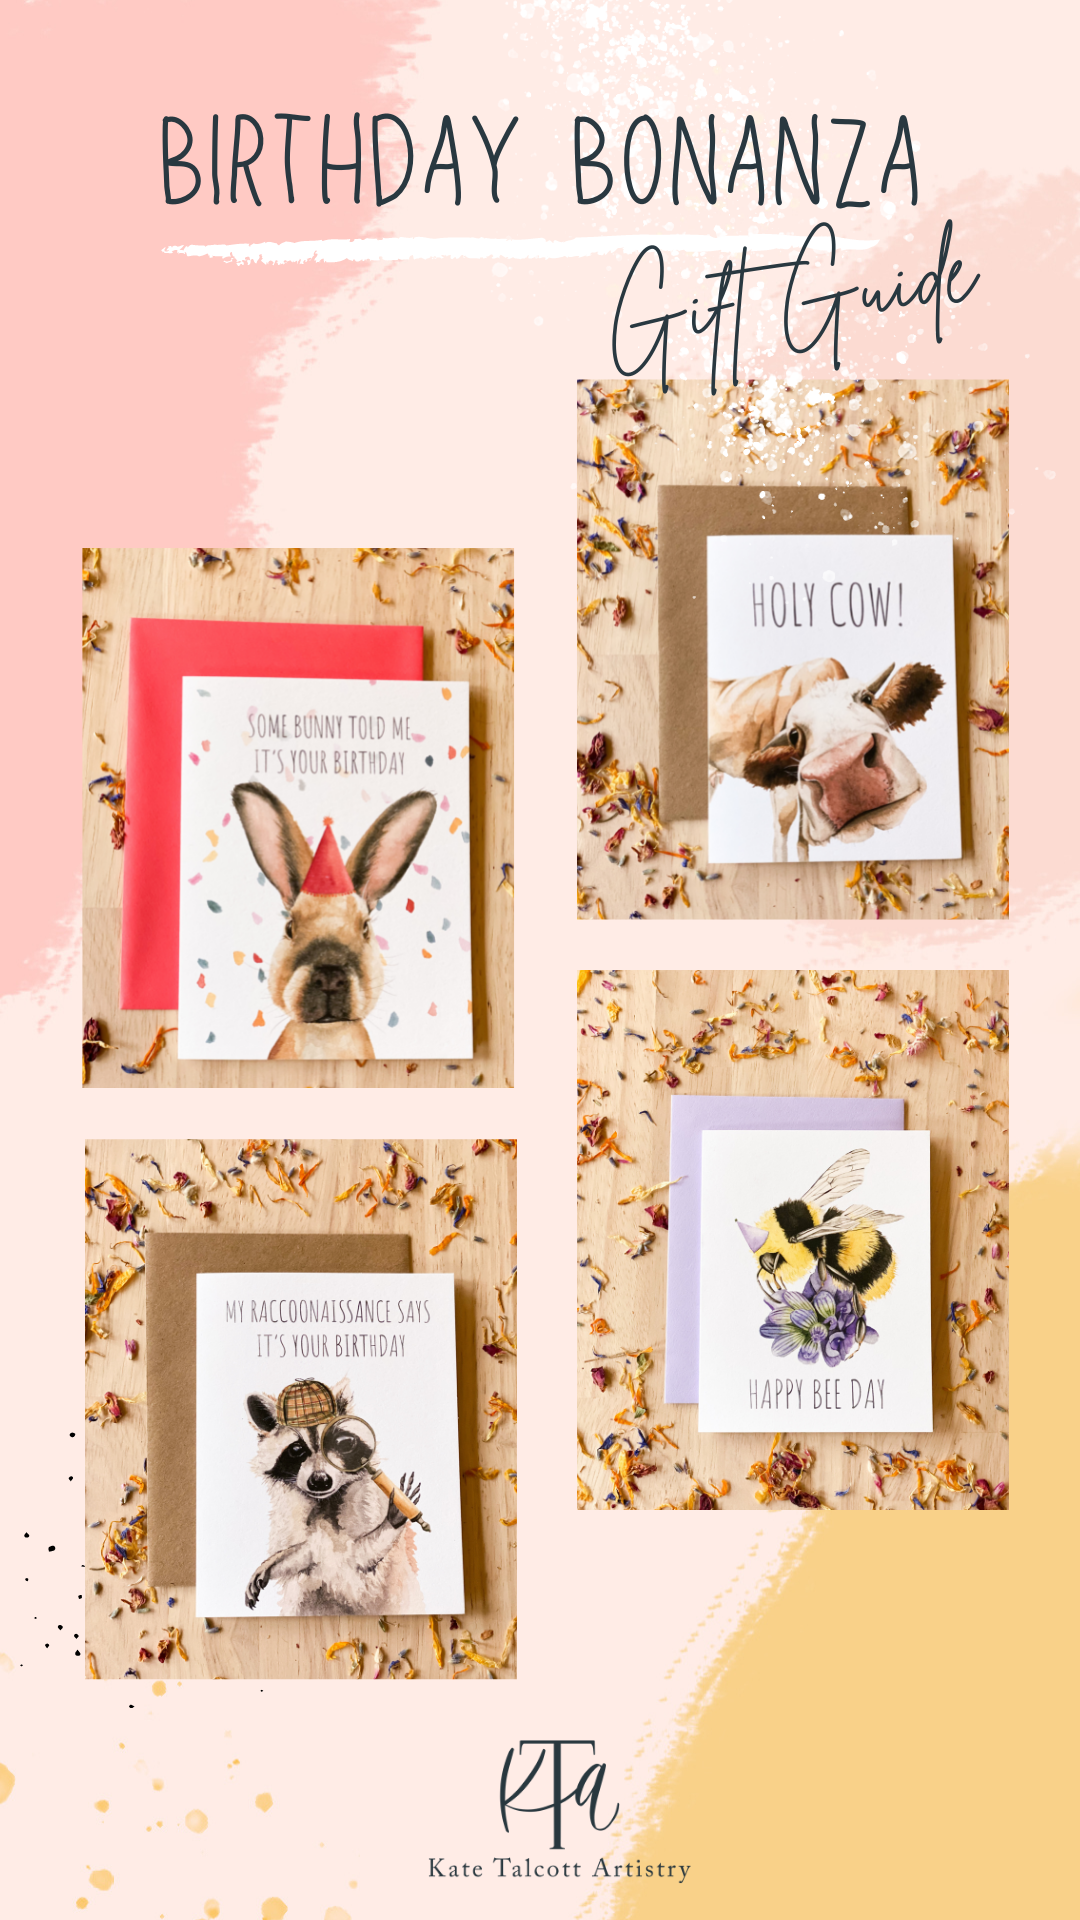 Birthday Card Gift Guide